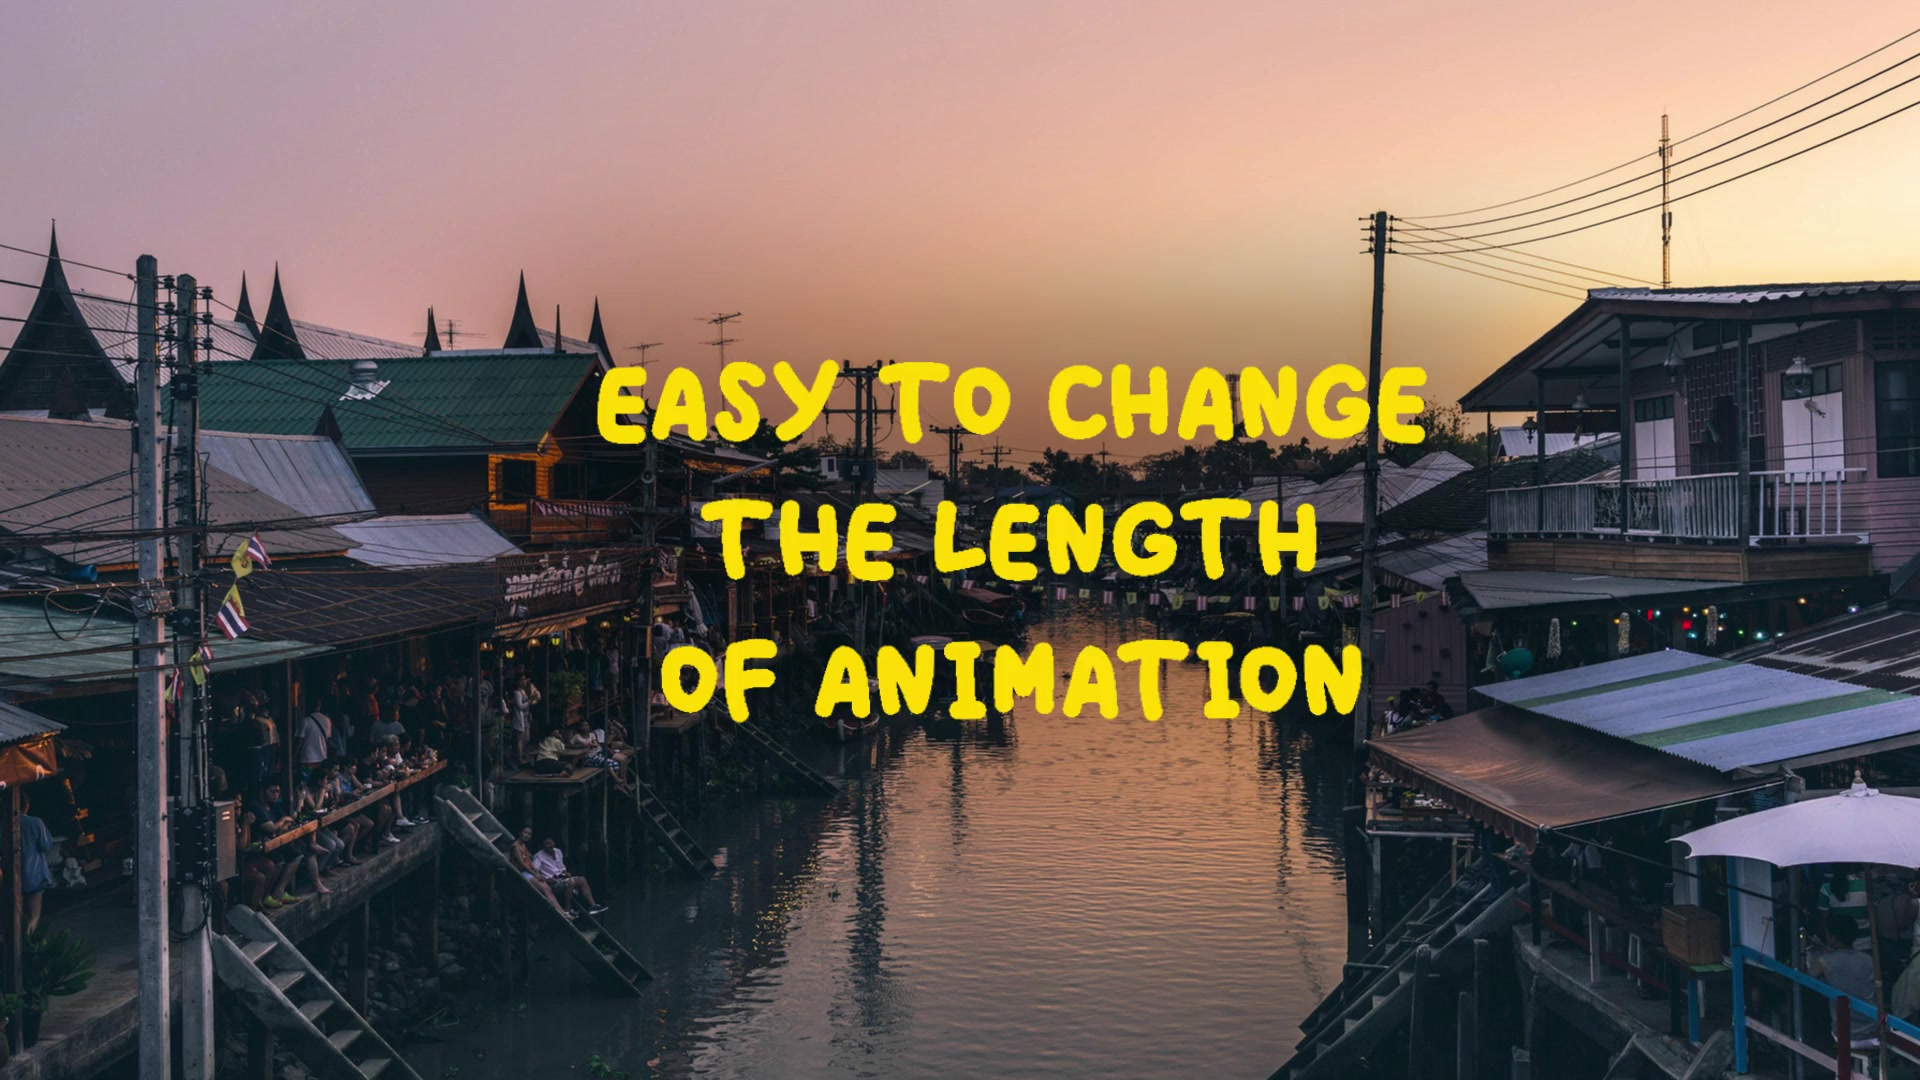 Cartoon Lyric Titles| After Effects Template Videohive 23650906 After Effects Image 4